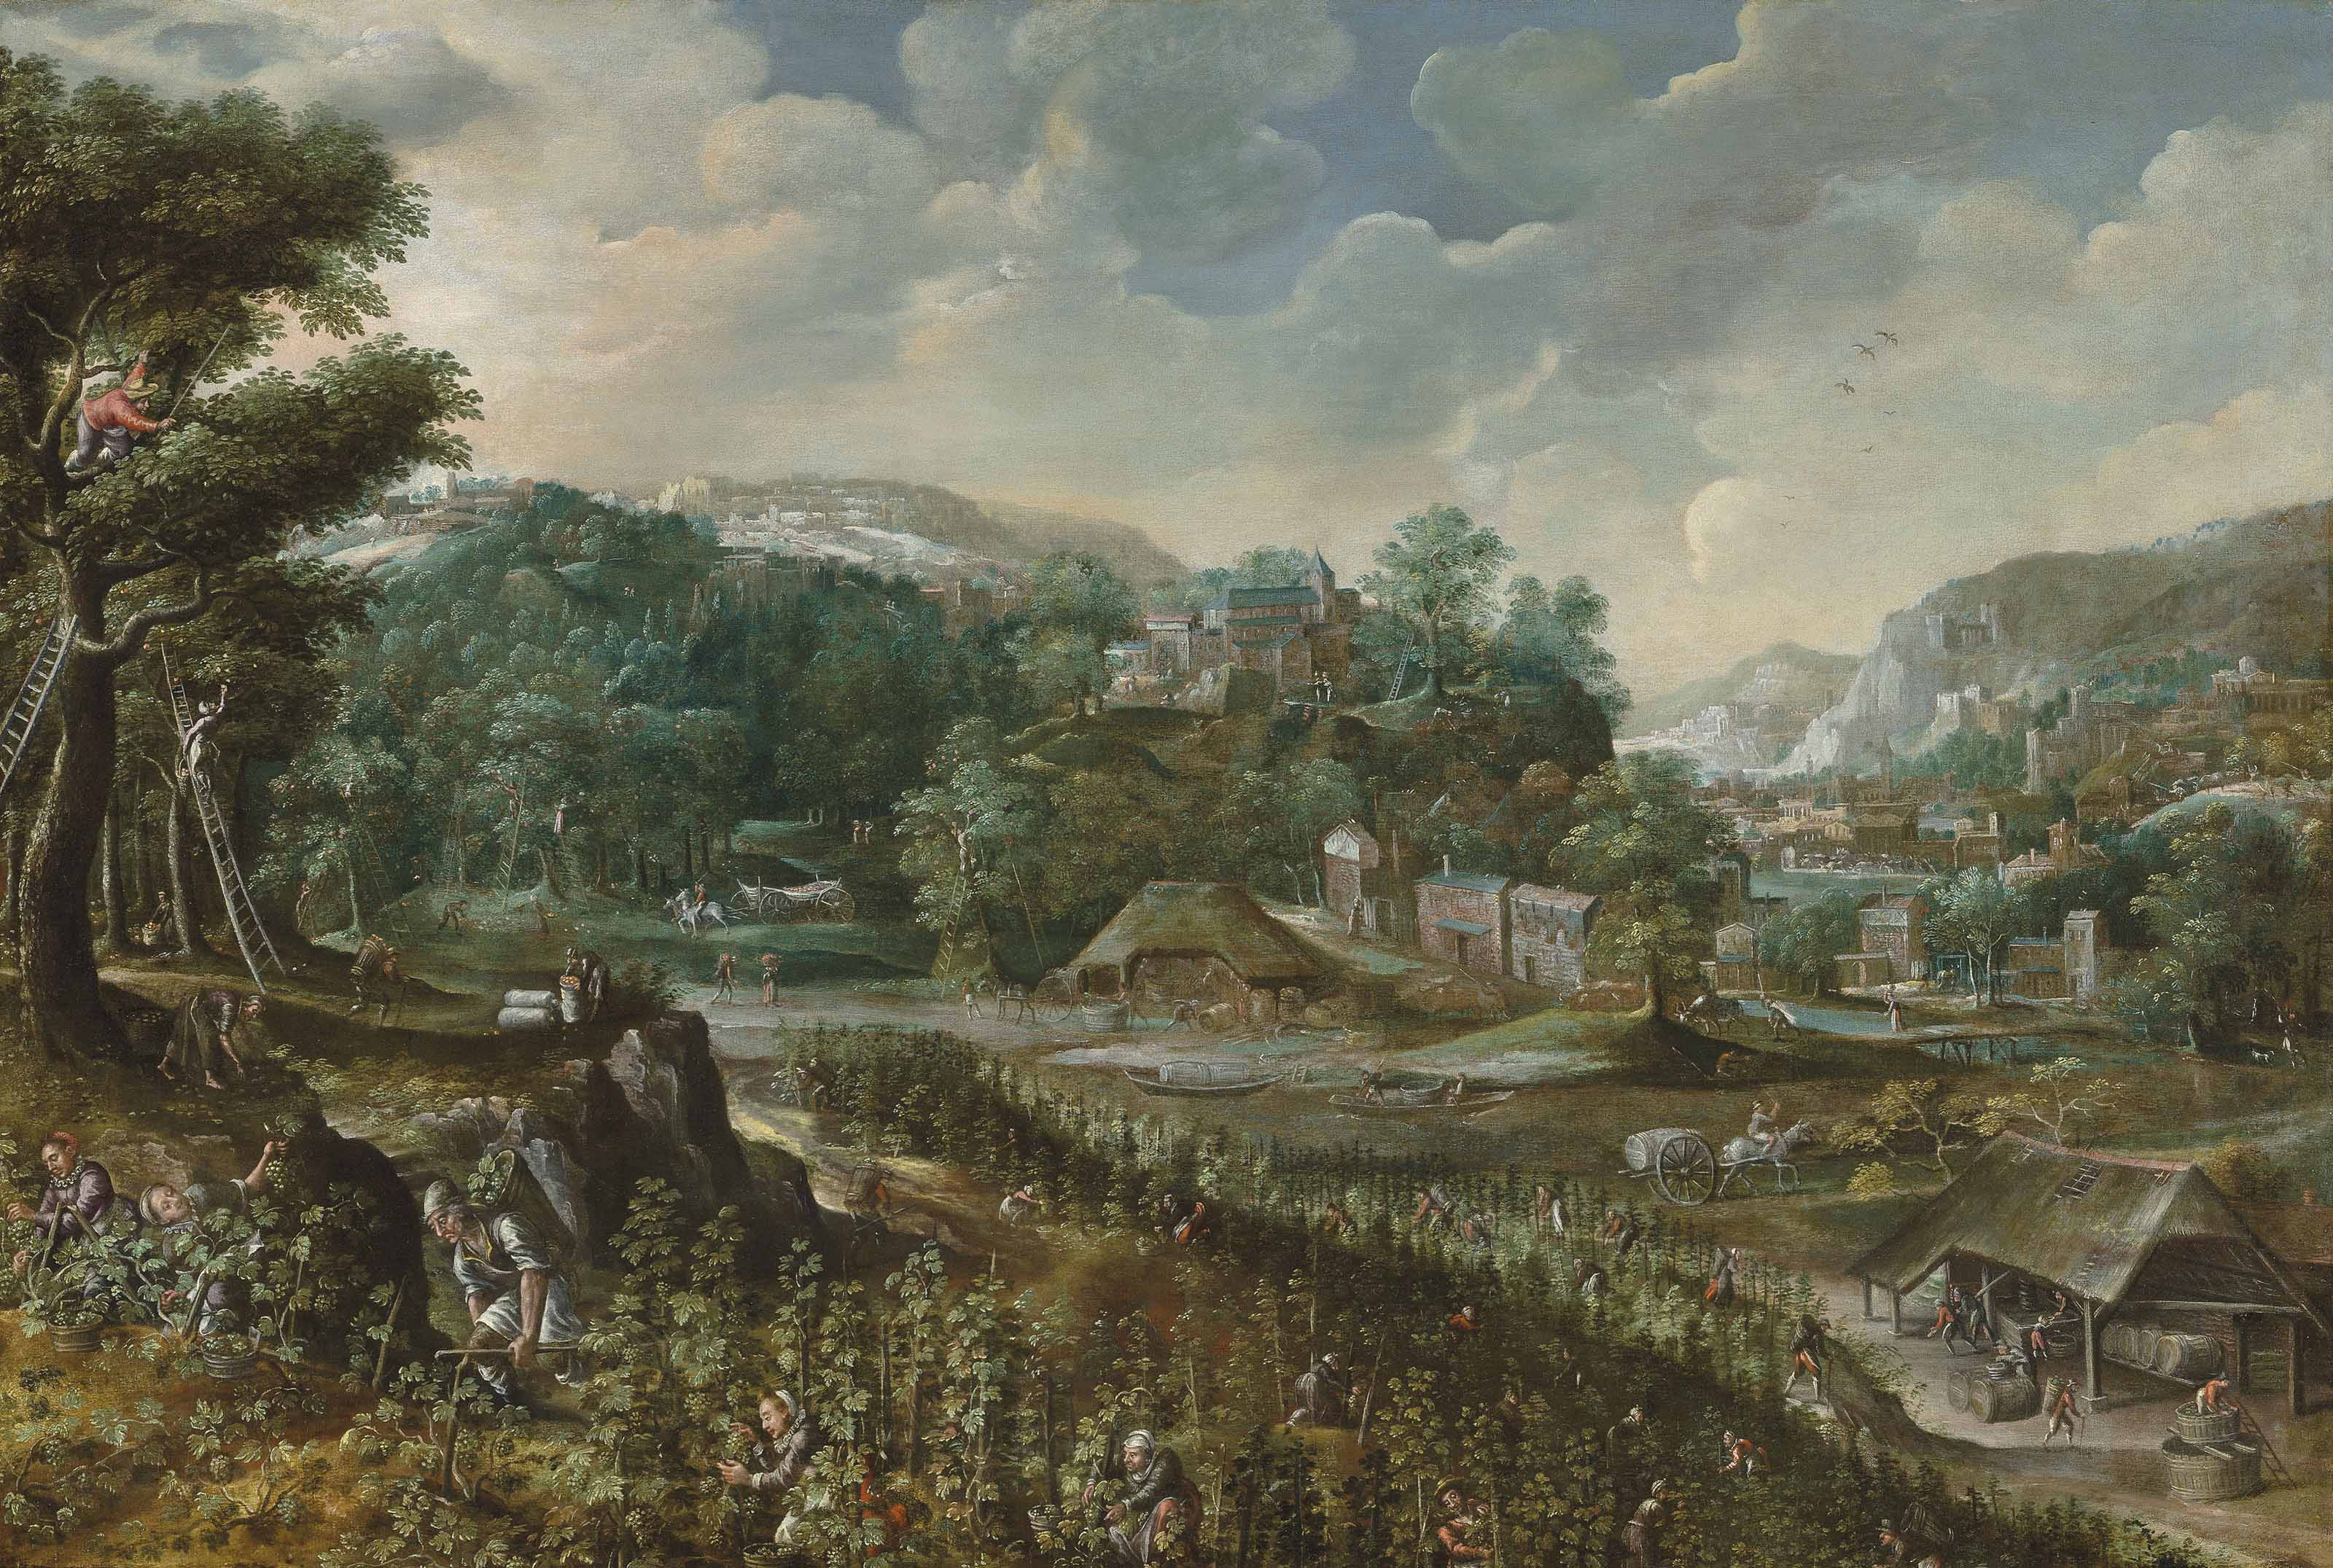 Allegory of Summer(?): an extensive landscape with peasants harvesting grapes and wine-making, a village beyond